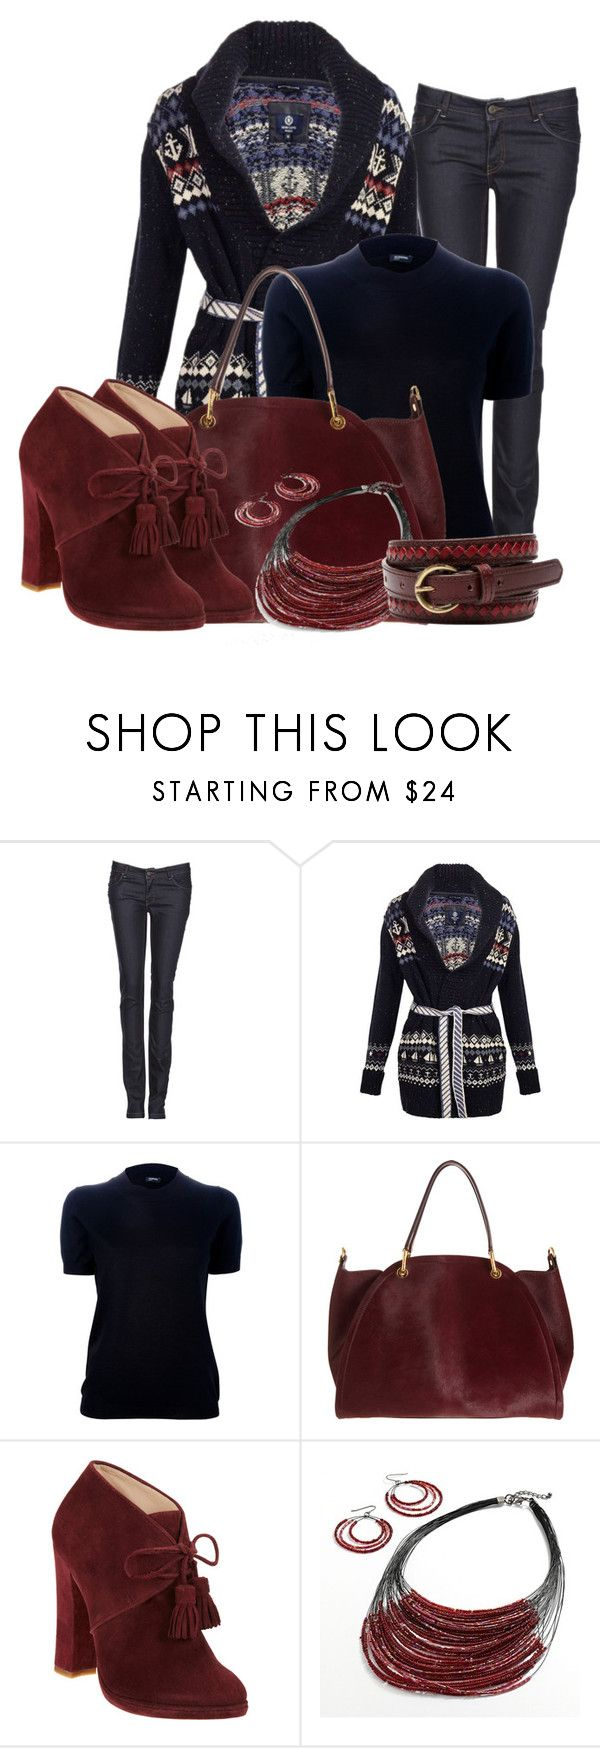 set 723 by ana-angela on Polyvore featuring moda, Henri Lloyd, Jil Sander Navy, CHIPIE, Cole Haan, Maiyet and Sonoma life + style